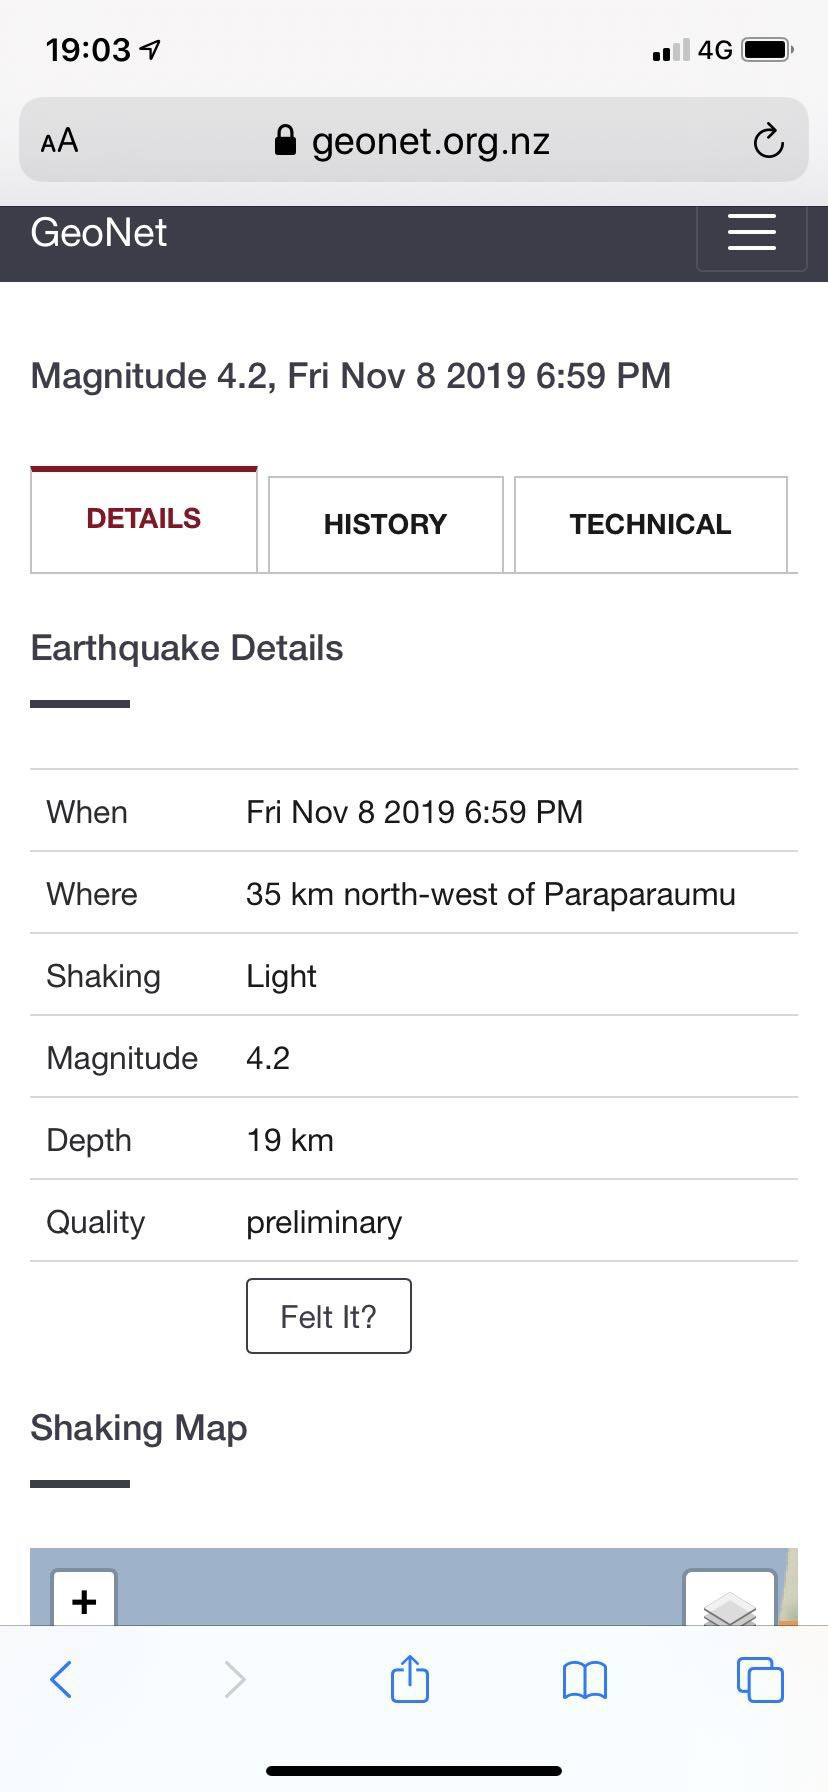 Date, time, magnitude and location of the quake.